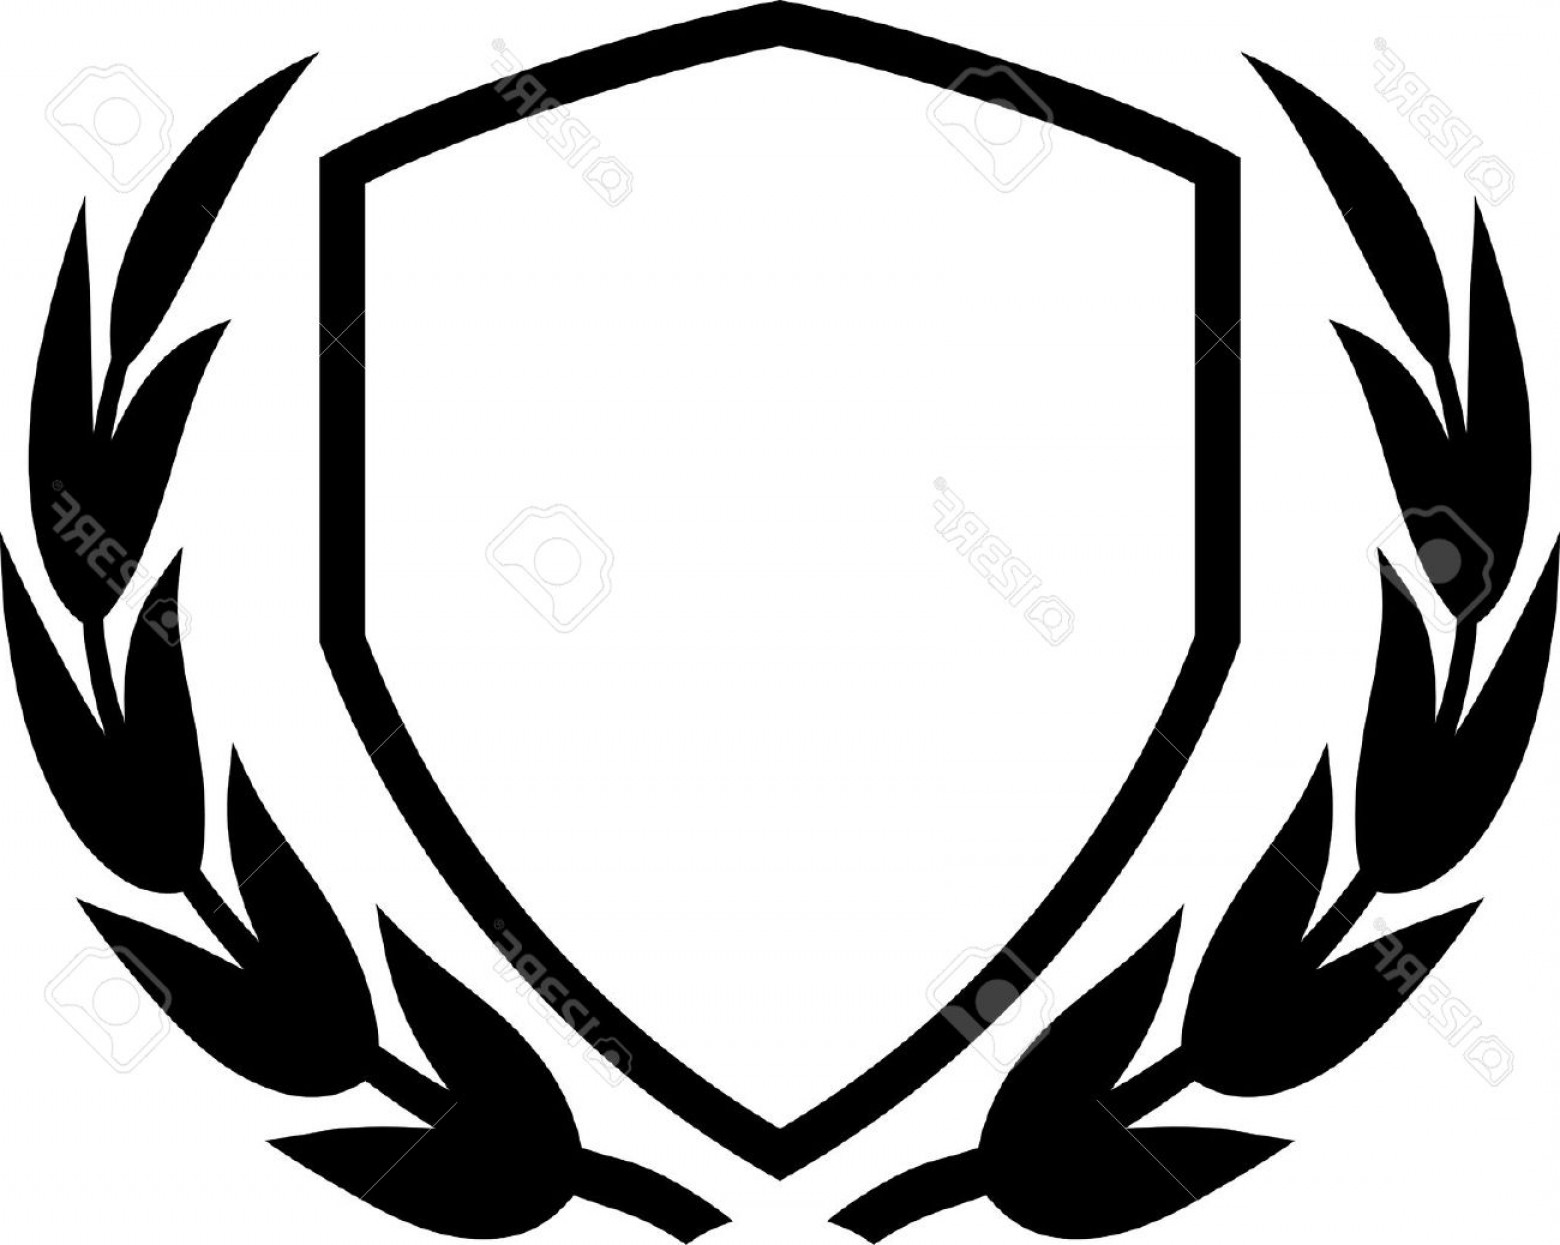 1560x1245 Shield Outline Clipart